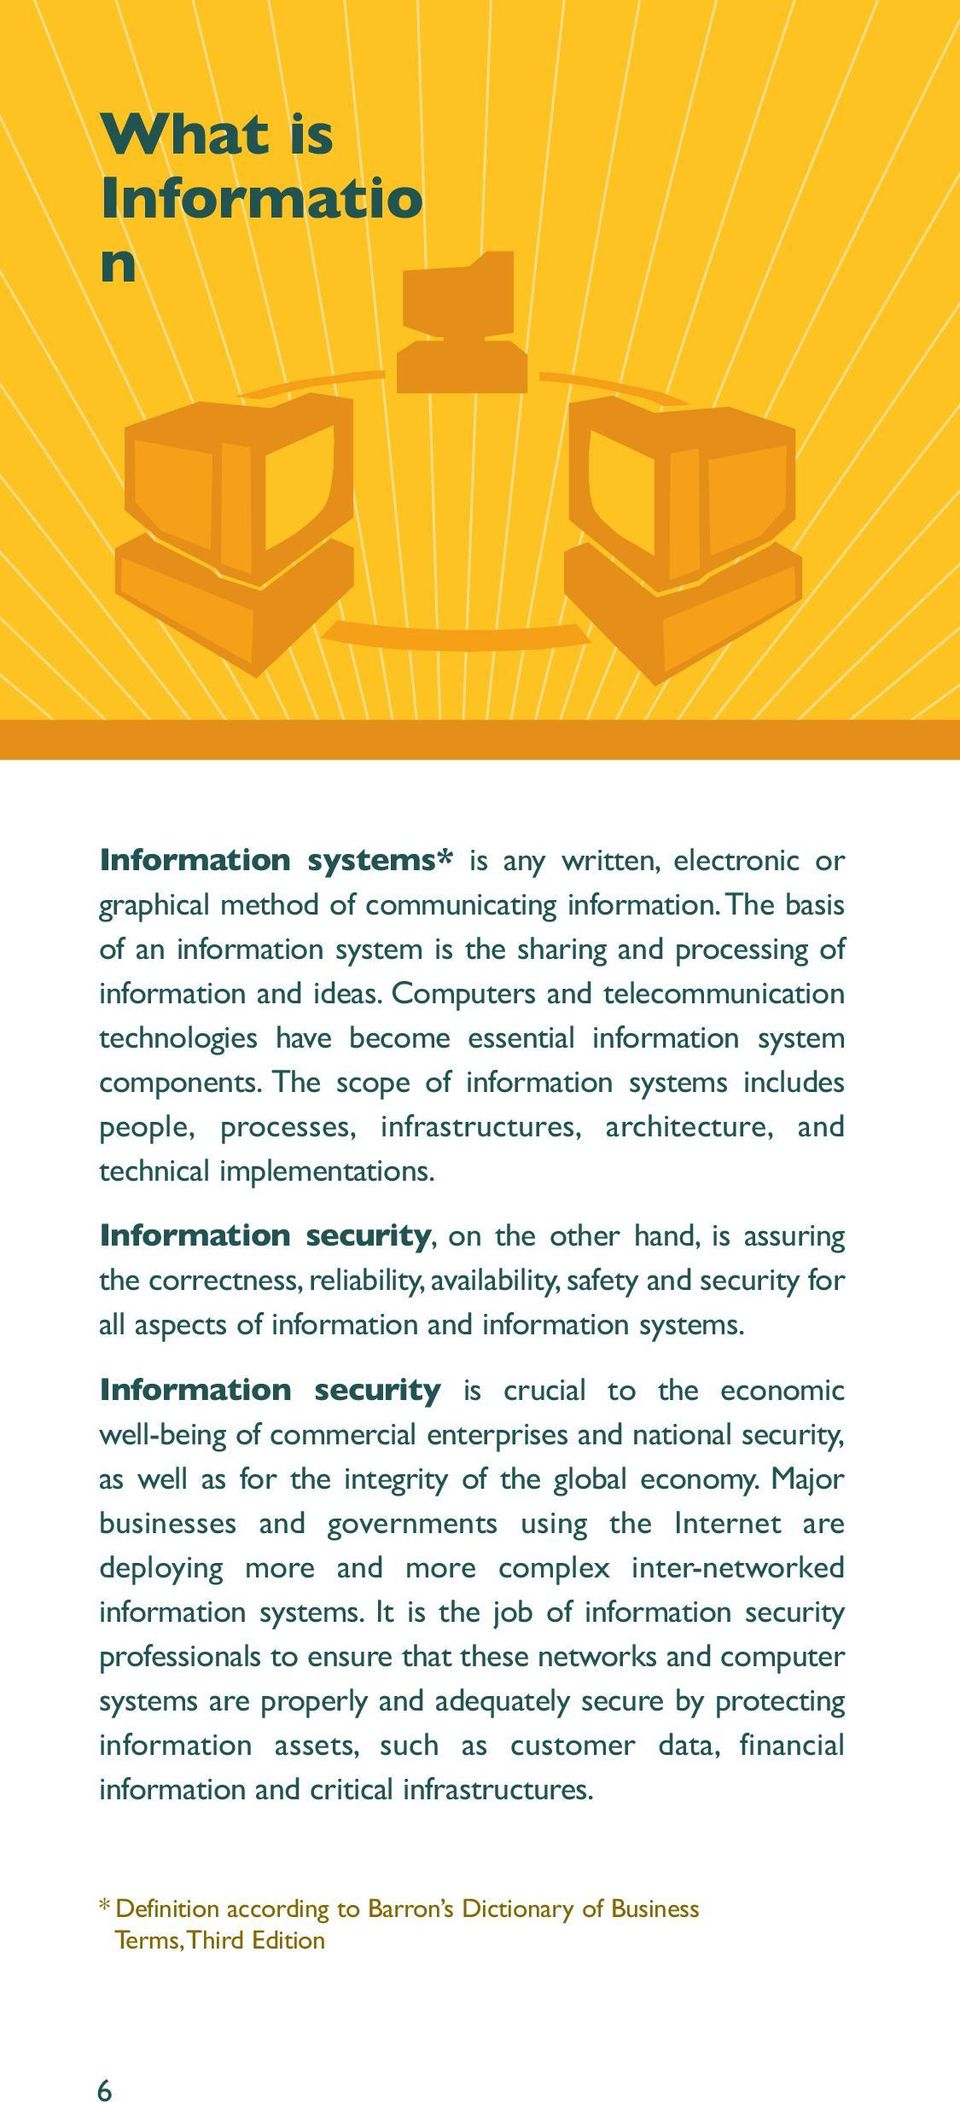 The scope of information systems includes people, processes, infrastructures, architecture, and technical implementations.